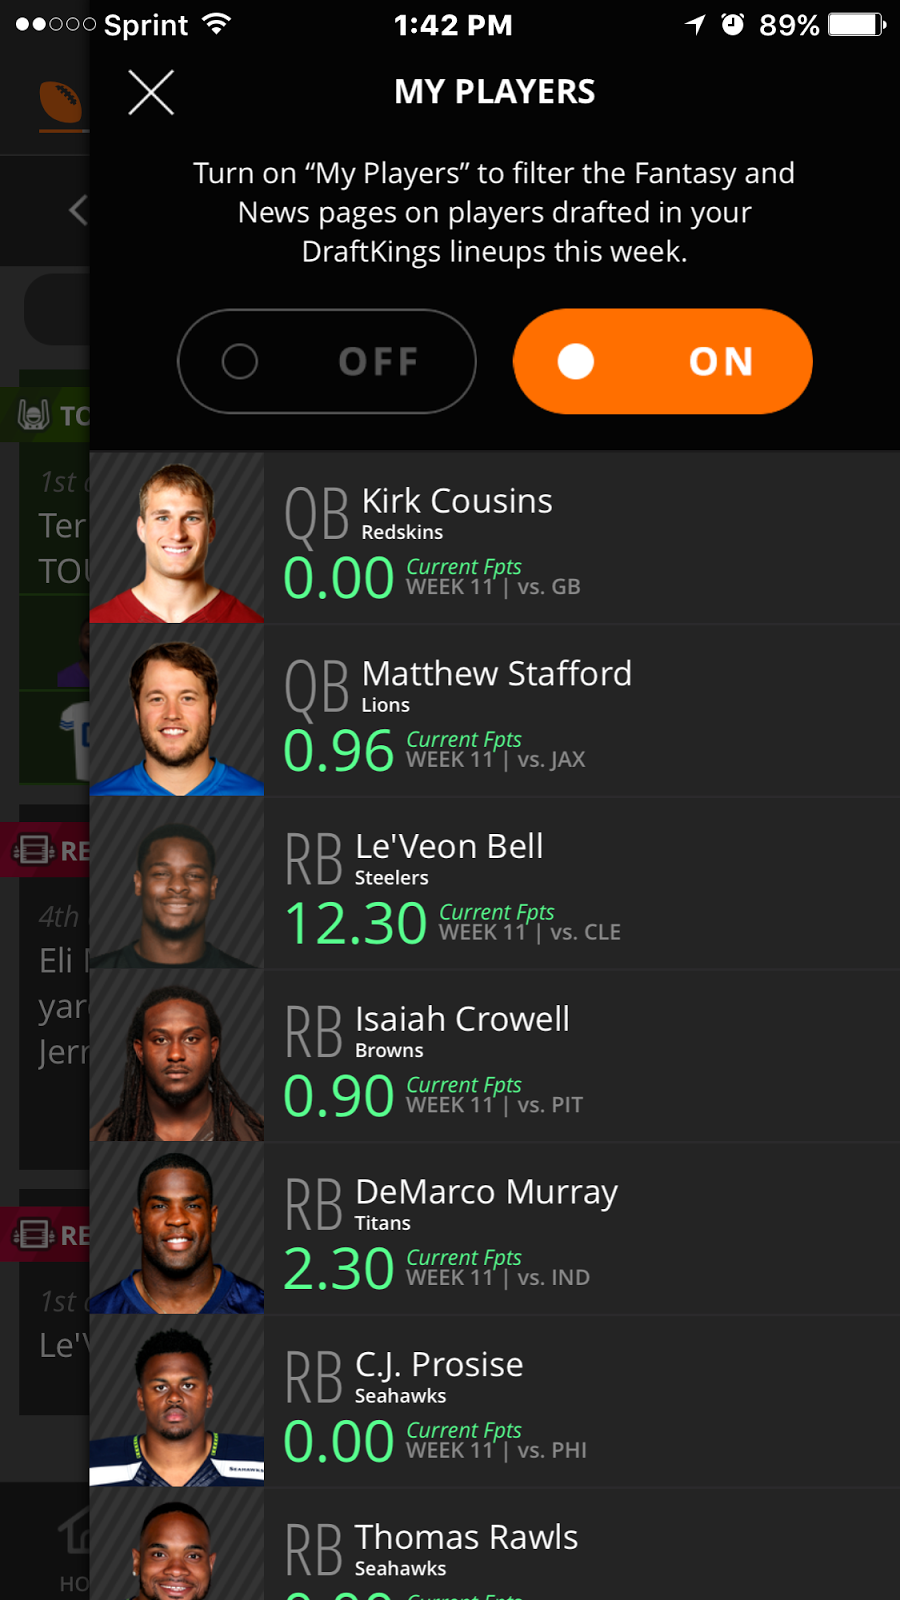 DraftKings Live App Review A must for any fantasy football player 2016 images